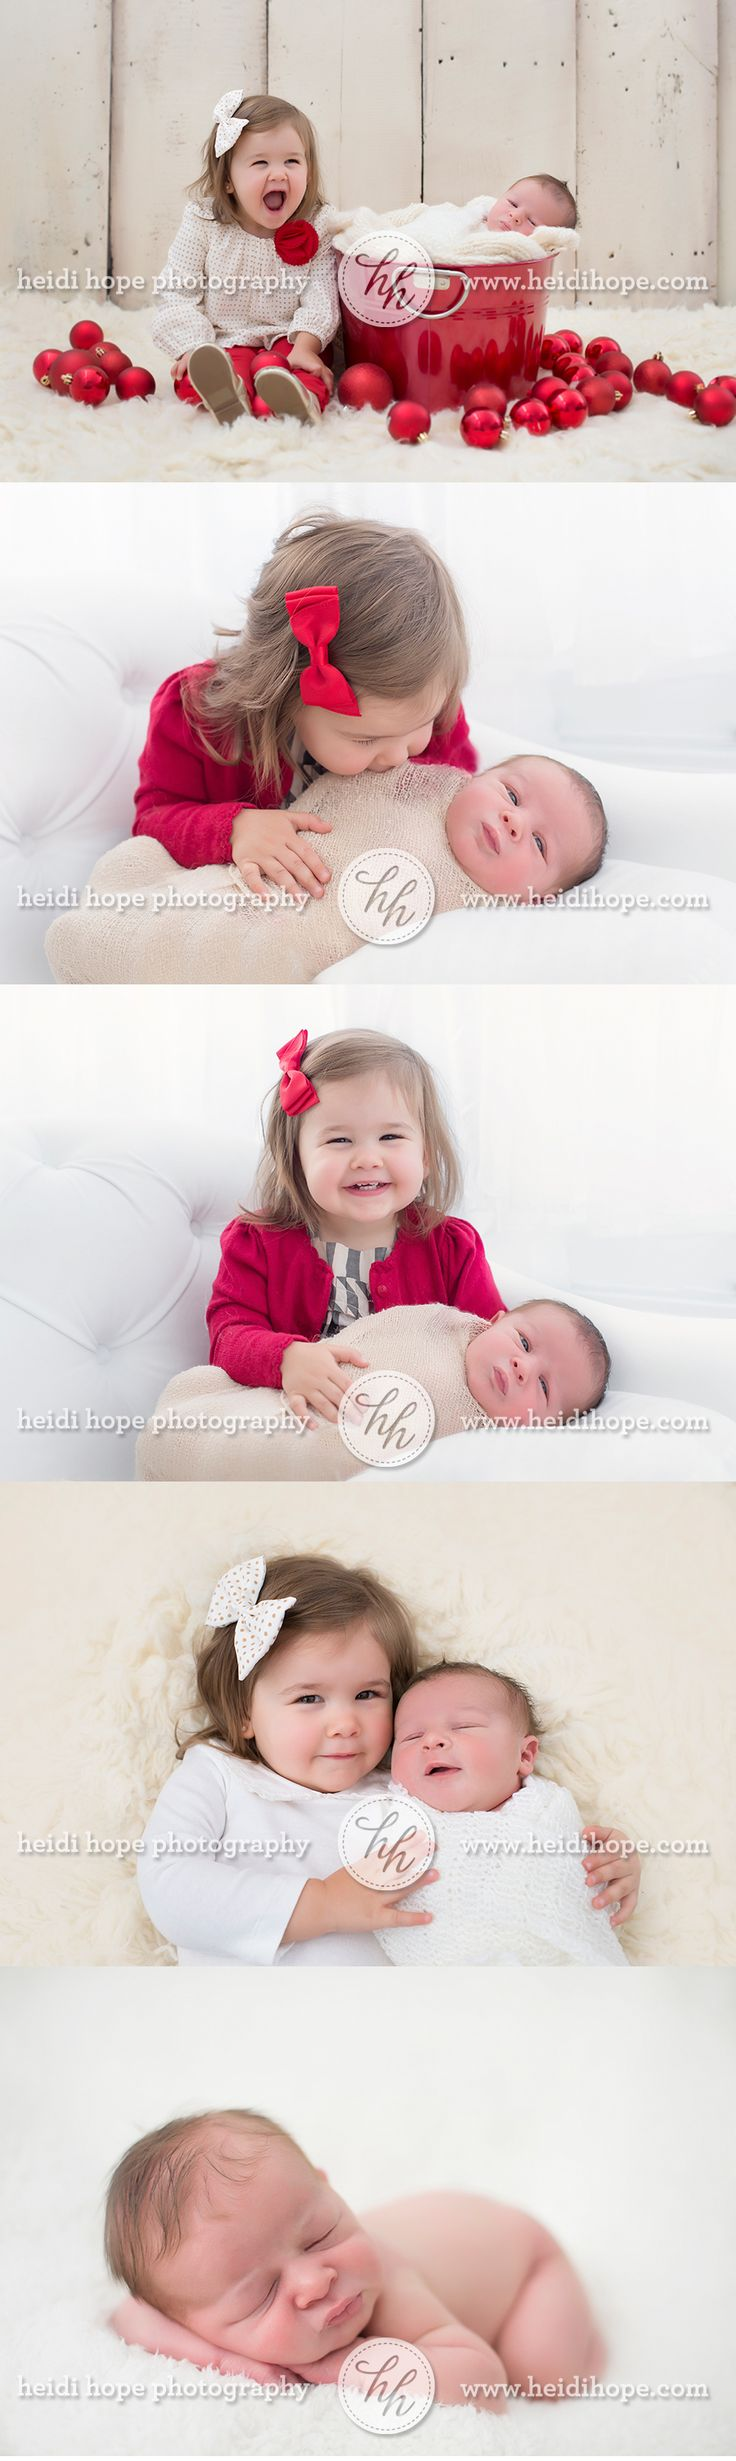 Big sister A welcomes her newborn baby brother M! #newborn #littlebrother #bigsisterlove #siblings!